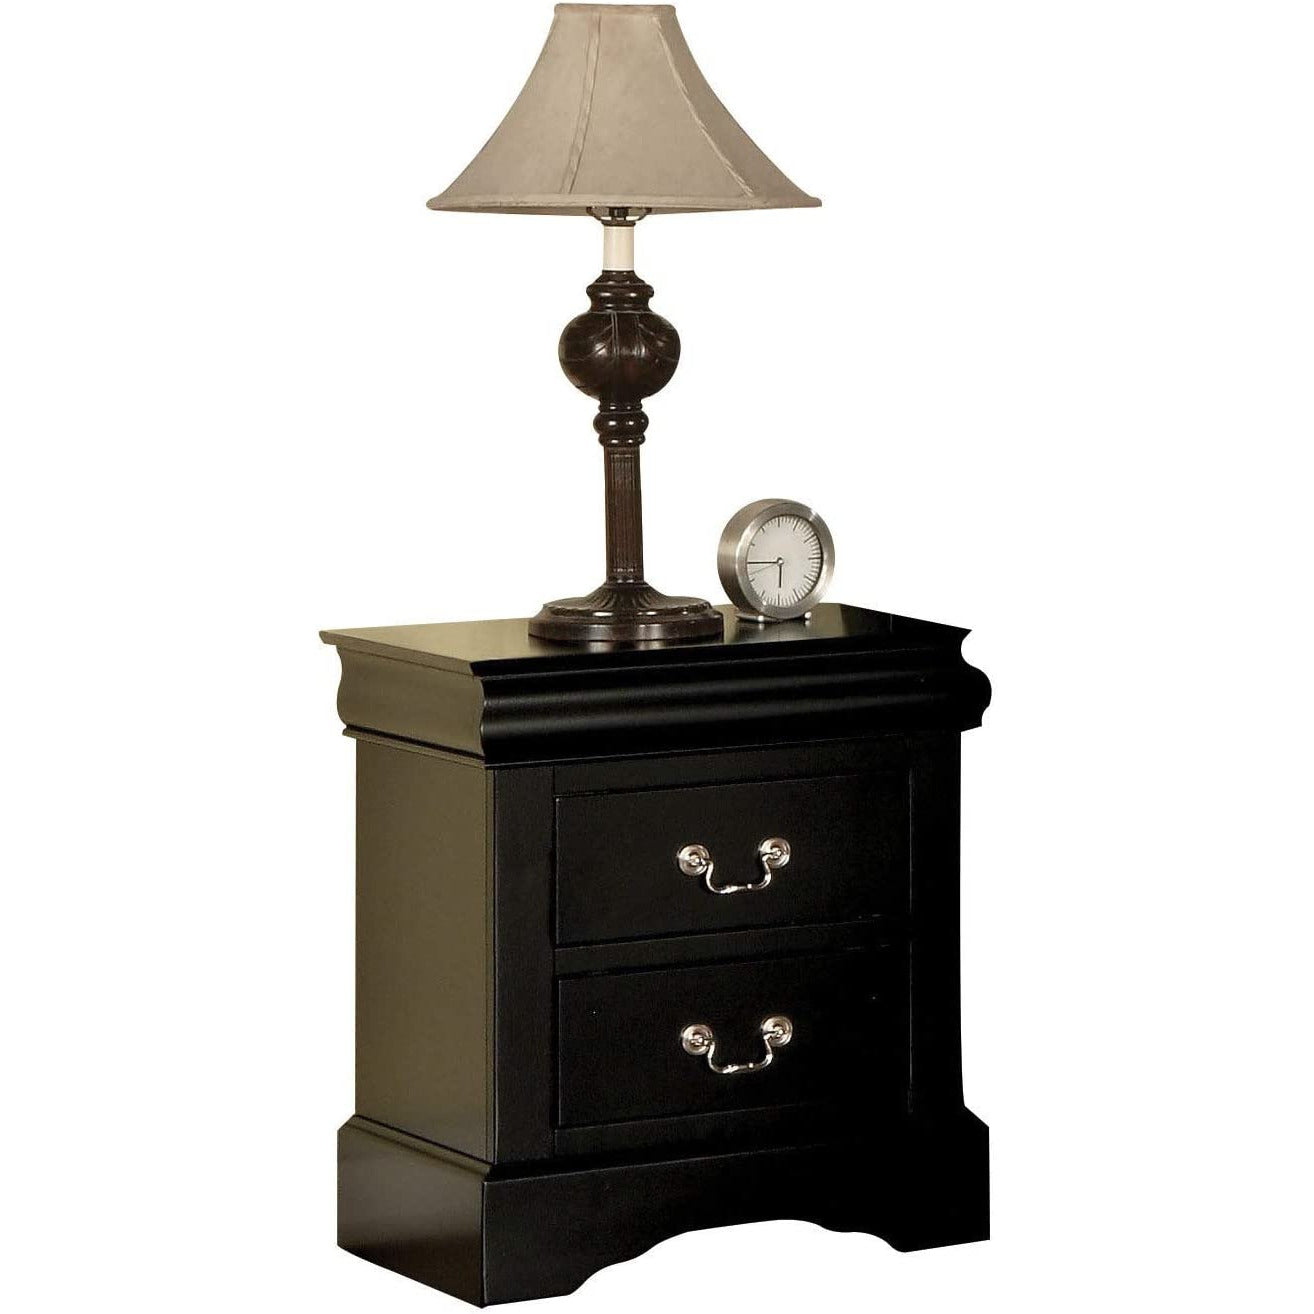 Rosy Brown End Table Side Table Bedroom Nightstand With Two Drawers BH19503 BH19523 BH24503 BH25503